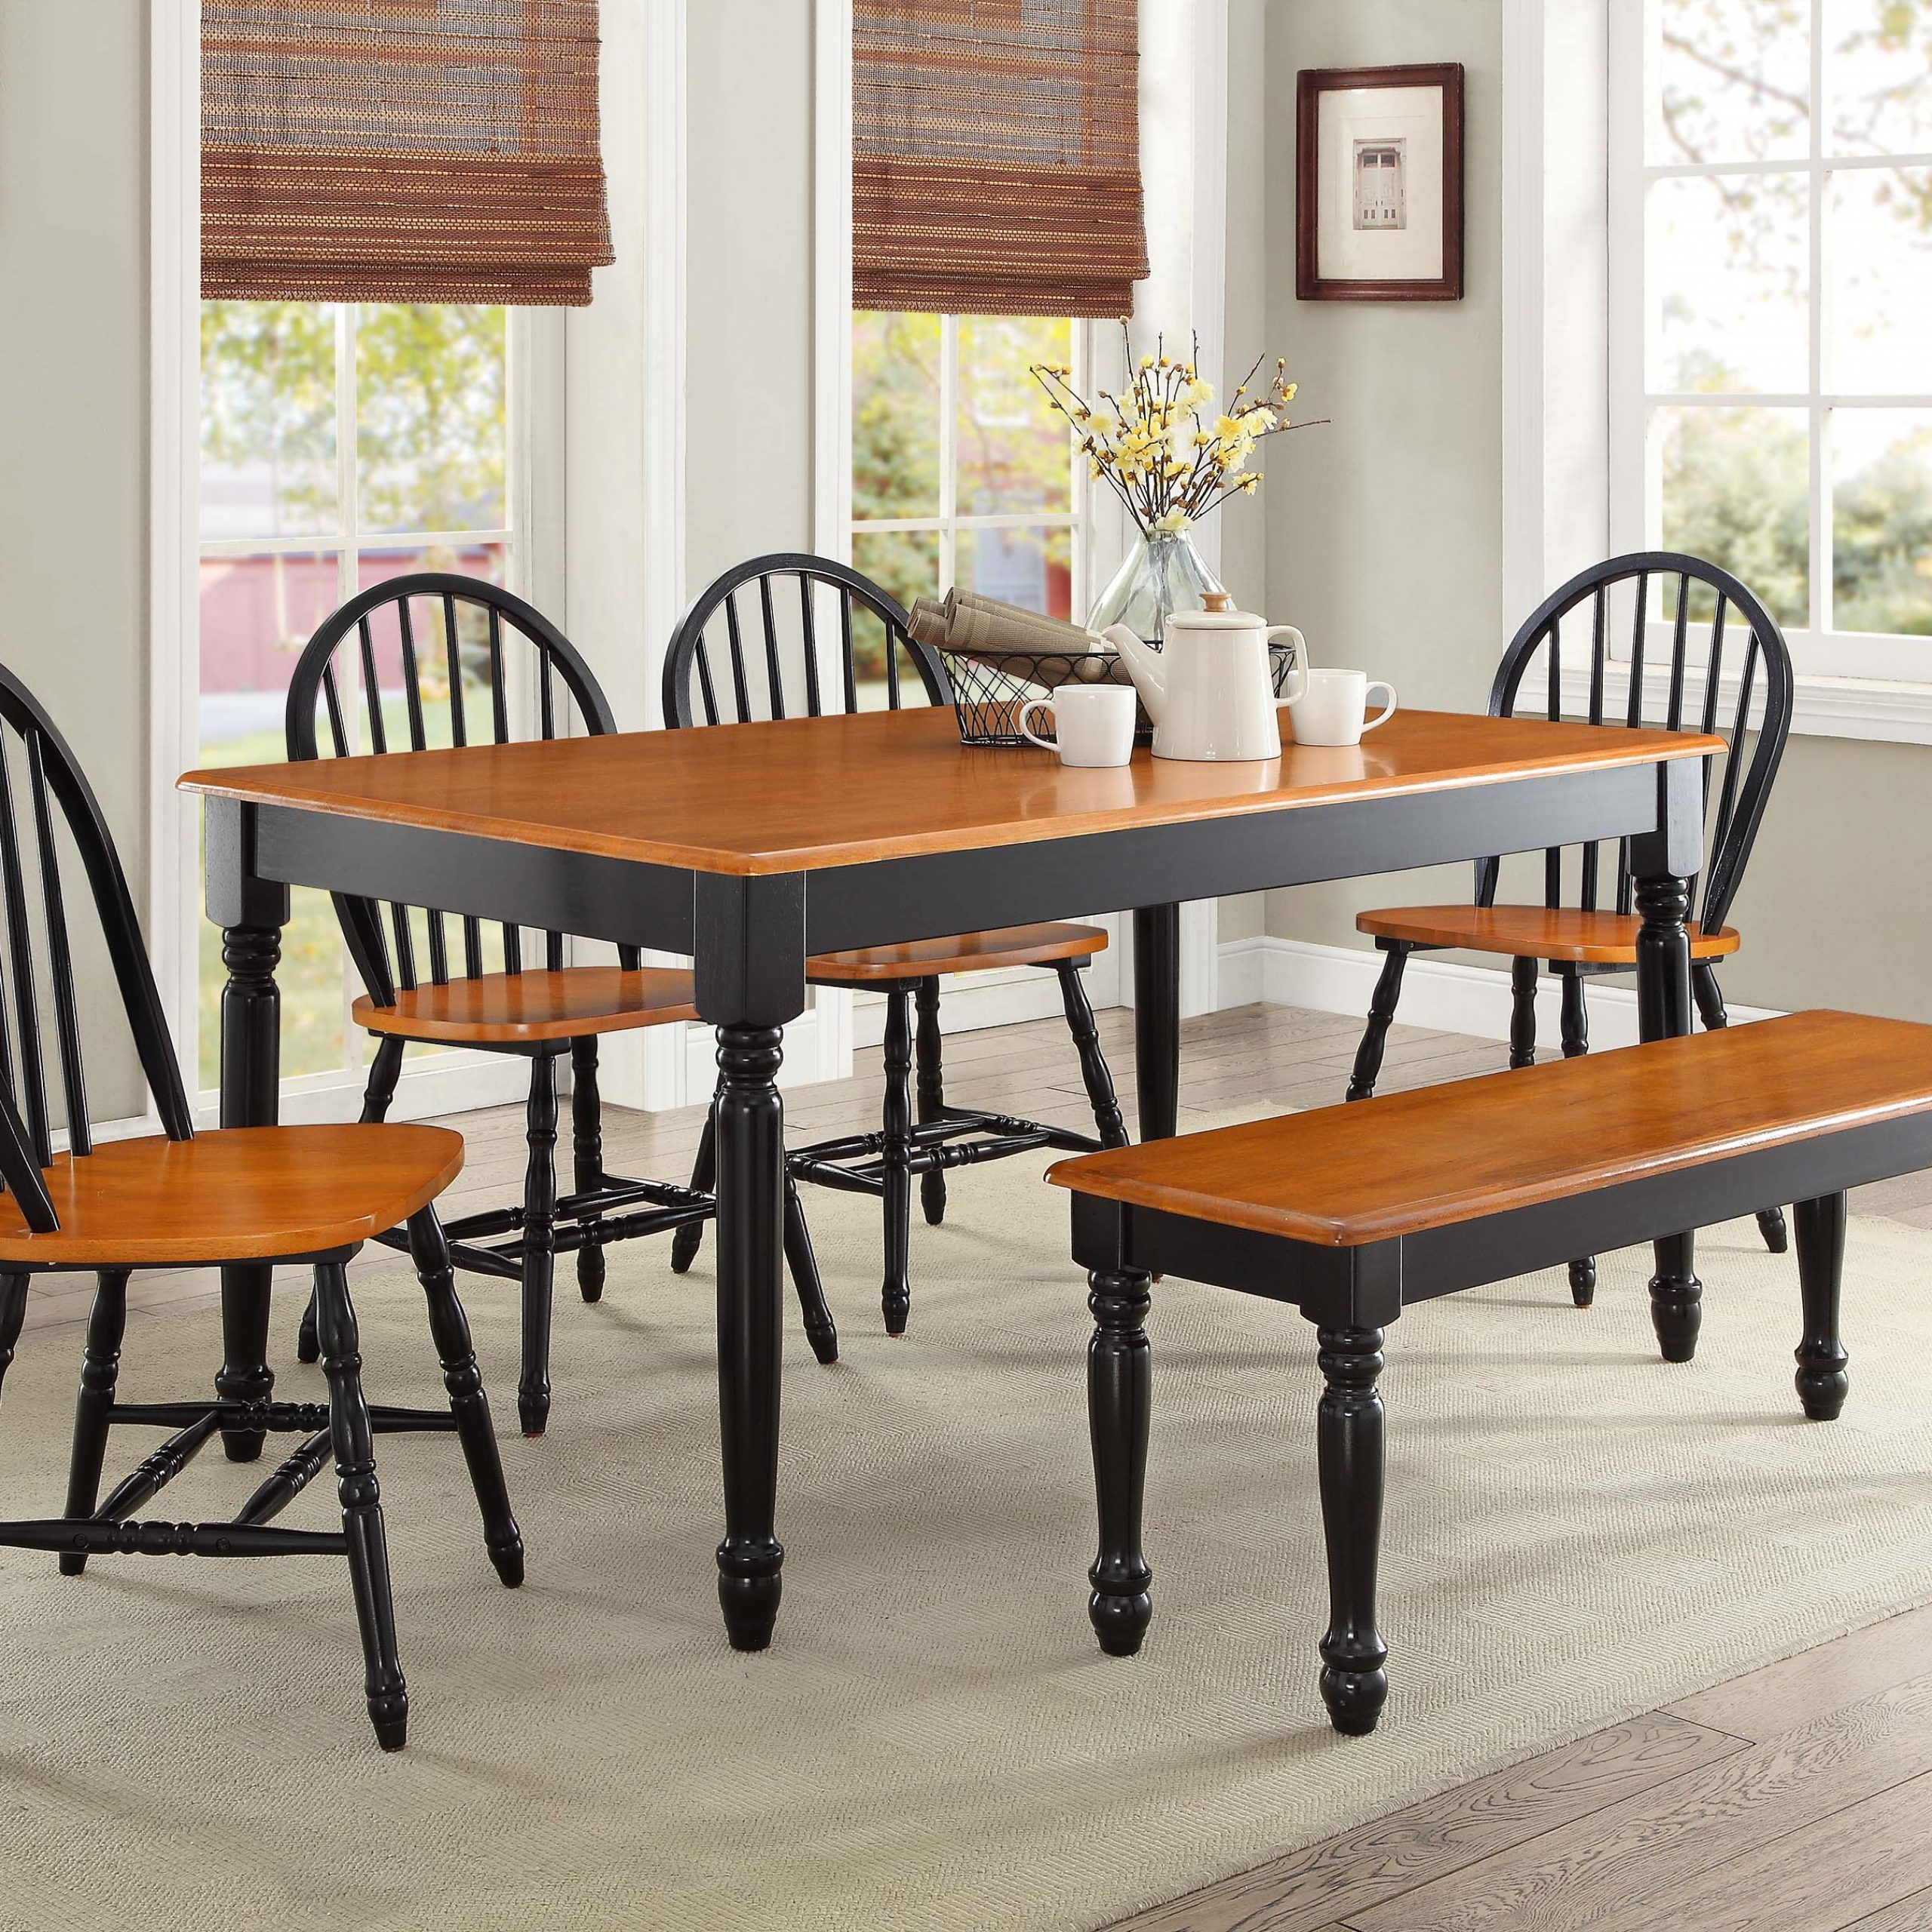 Kitchen And Dining Room Chairs Wood : Kitchen And Dining with regard to Well-known Antique Black Wood Kitchen Dining Tables